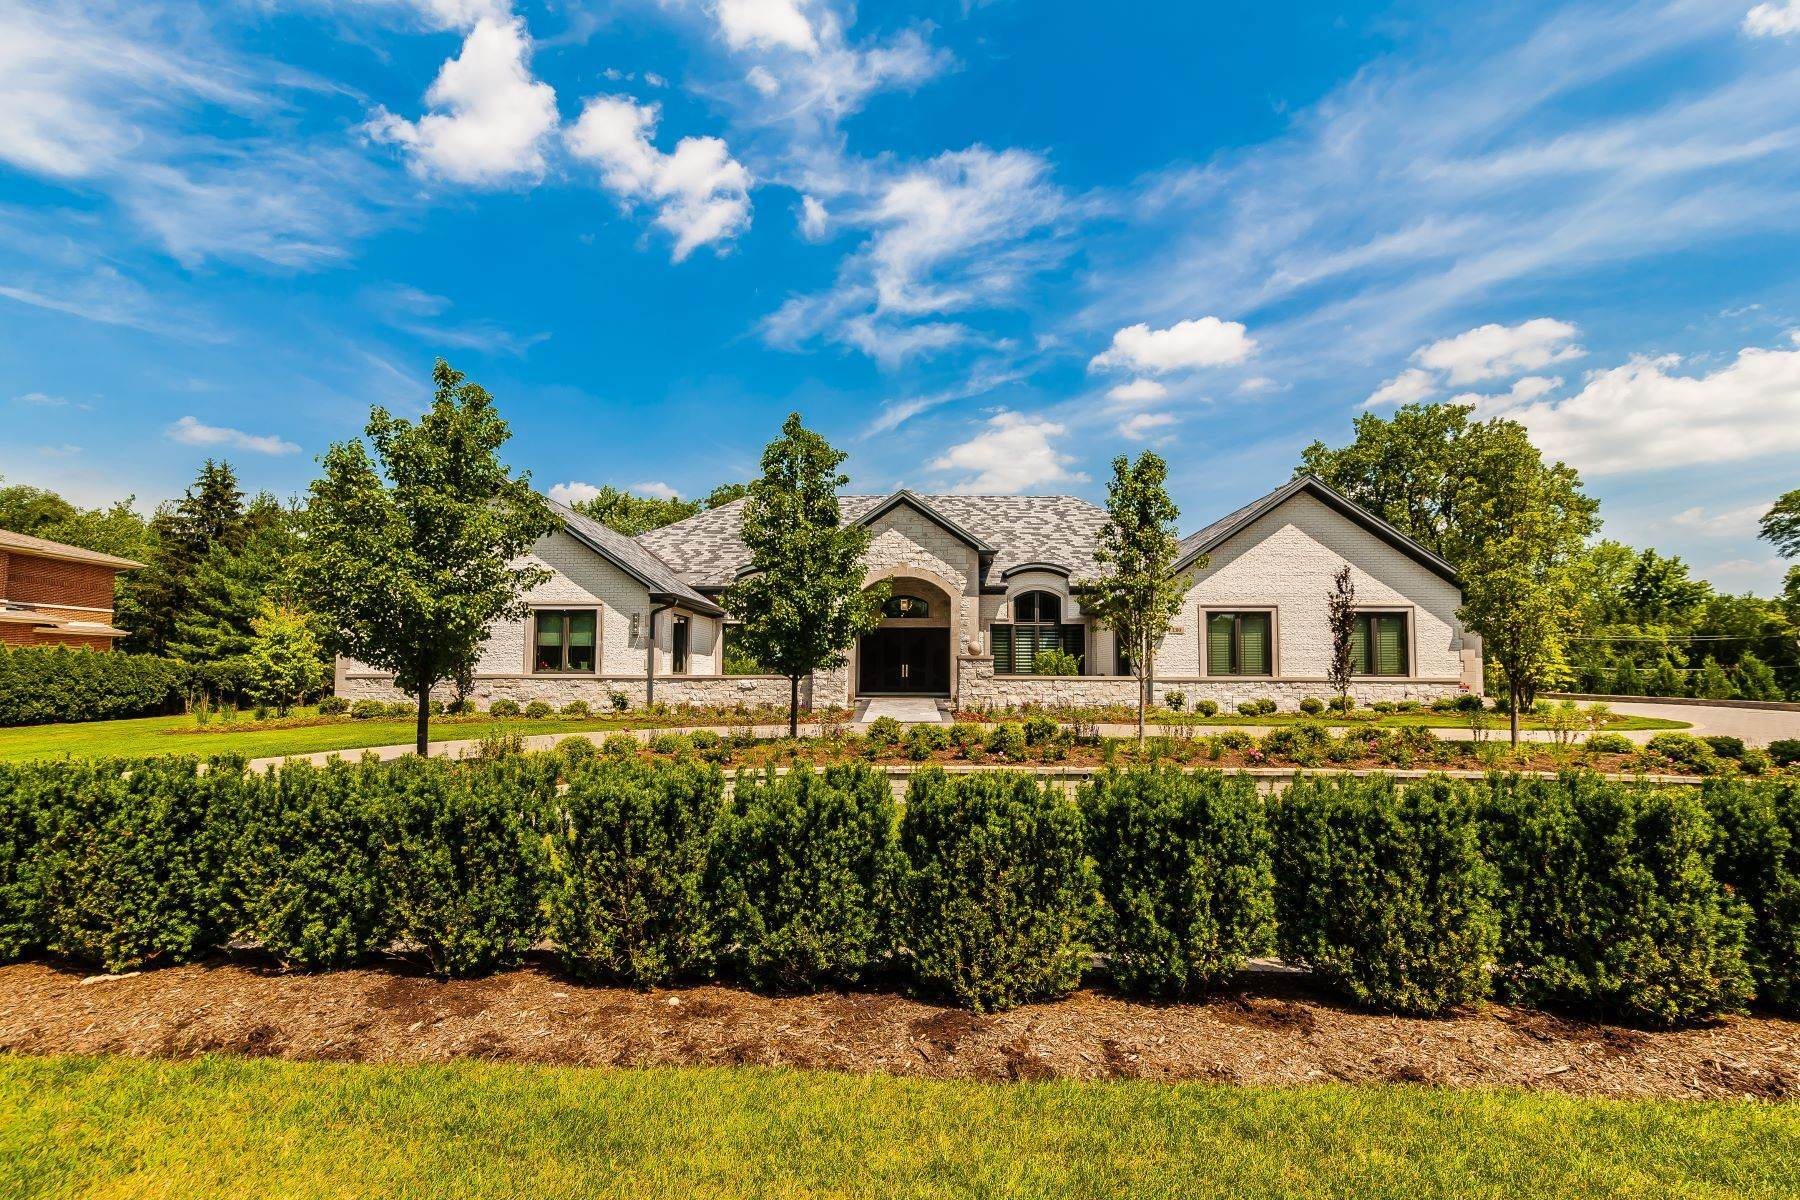 Single Family Homes for Sale at Spectacular Northbrook Home 3310 Sunset Trail Northbrook, Illinois 60062 United States